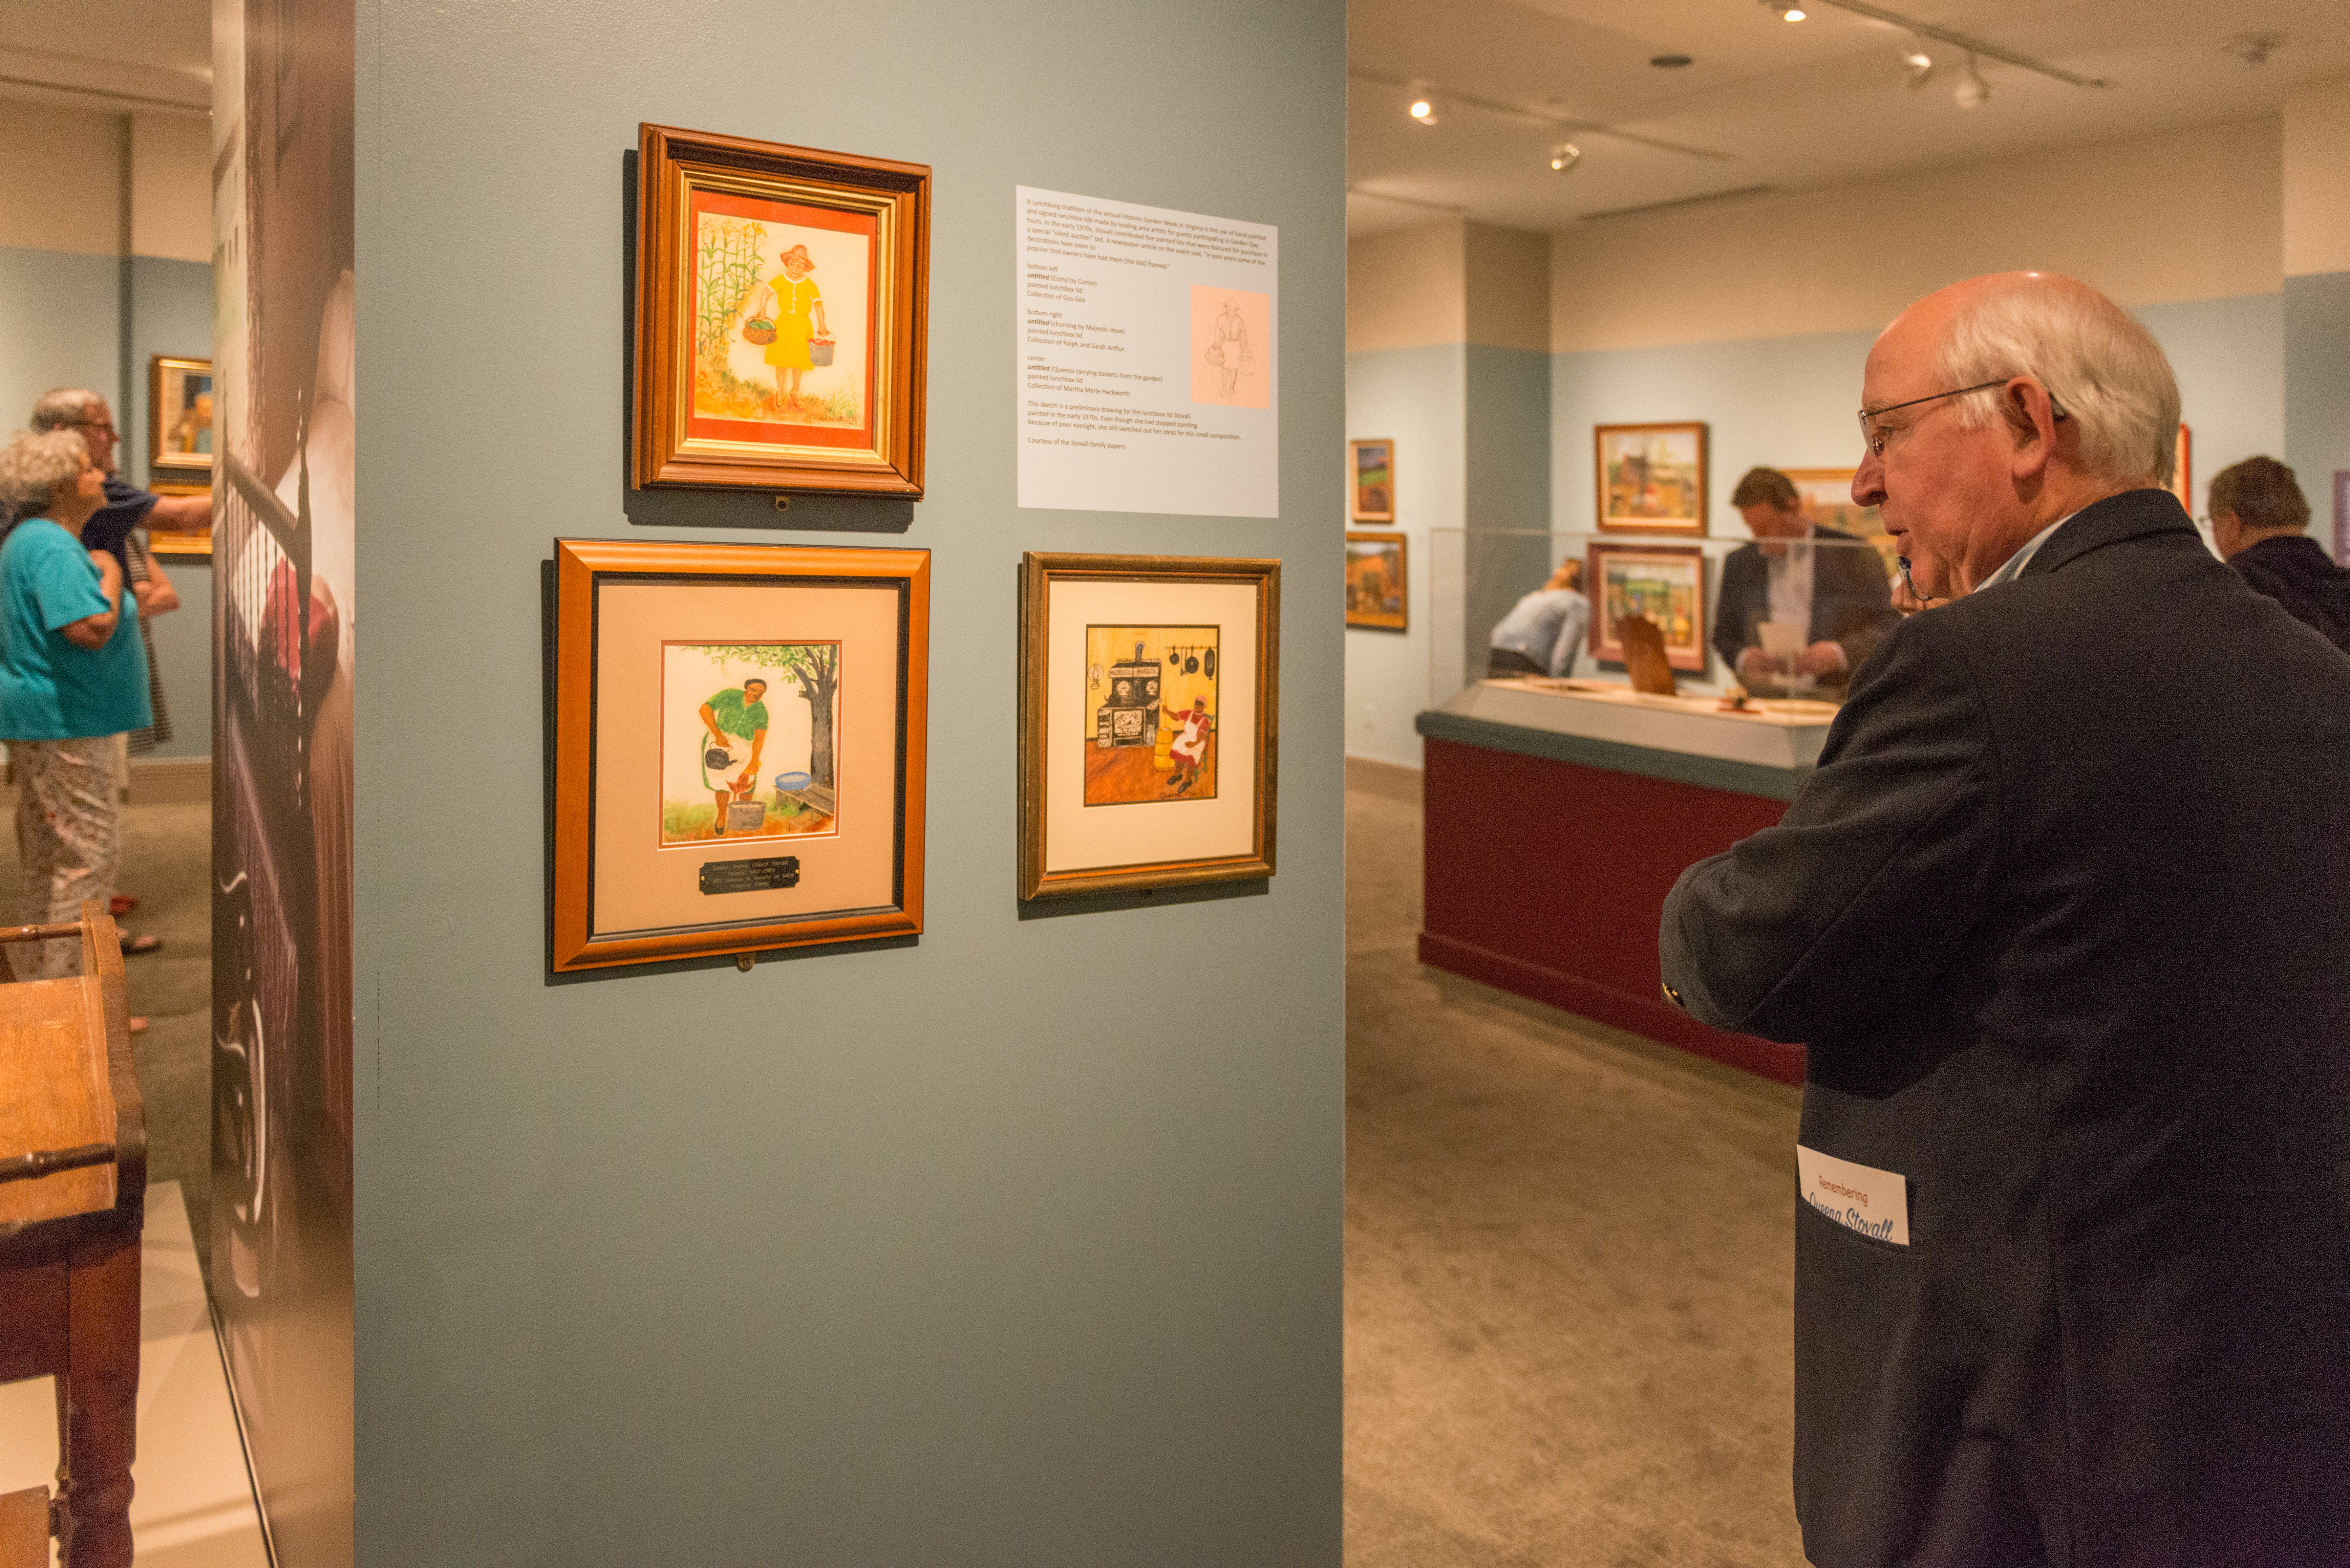 A member looks at paintings in the Queena Stovall exhibition